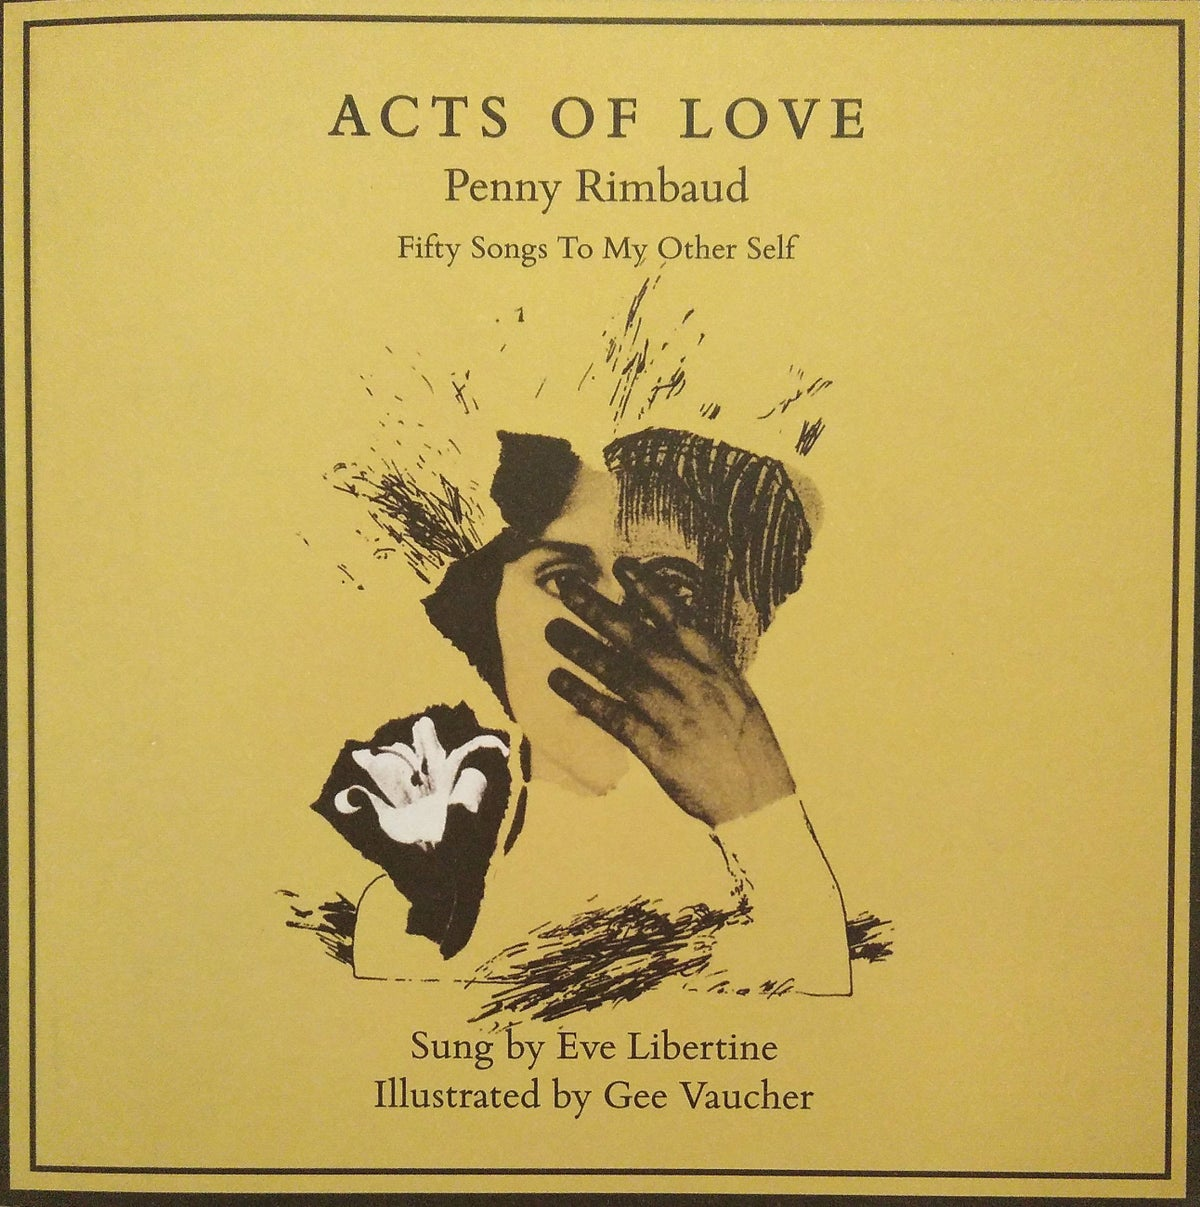 Image of Acts Of Love: A book/CD by Penny Rimbaud.